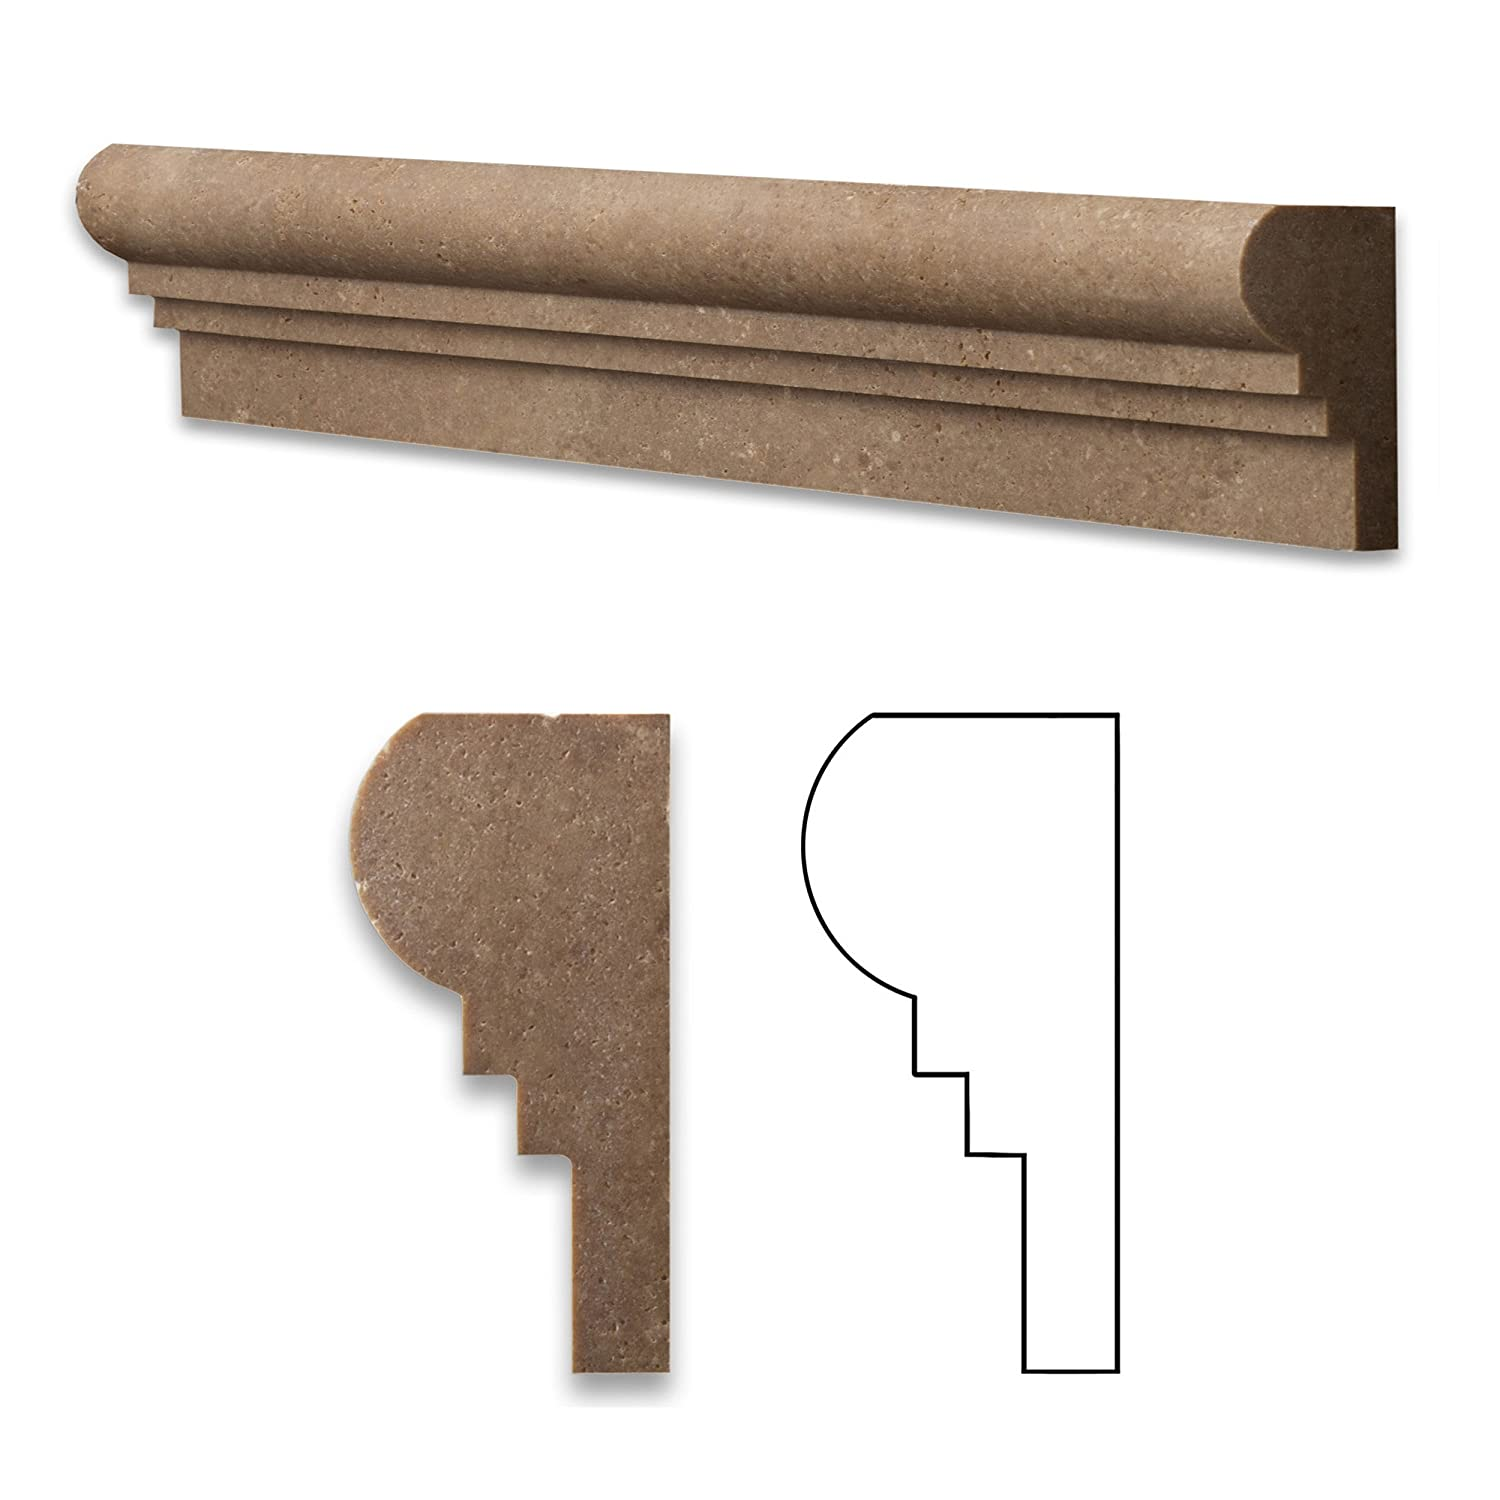 Noce 2 1/2 X 12 Travertine Chair Rail OGEE-2 Molding - Wood Moldings ...